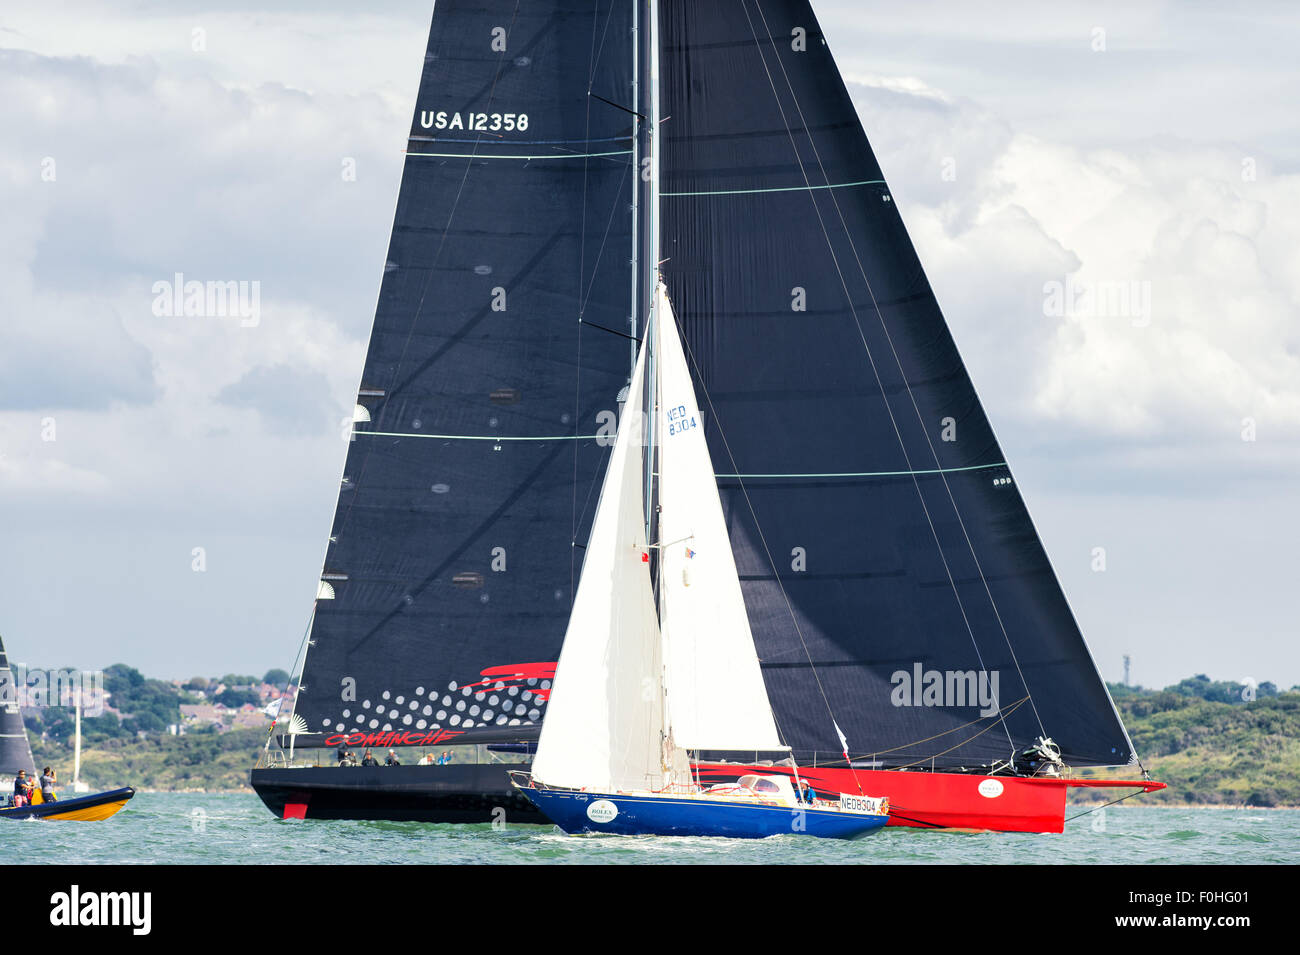 Cowes, Isle of Wight, UK, Sunday. 16  August 2015. The 46th edition of the Rolex Fastnet Race 2015 started at 12:00 - Stock Image